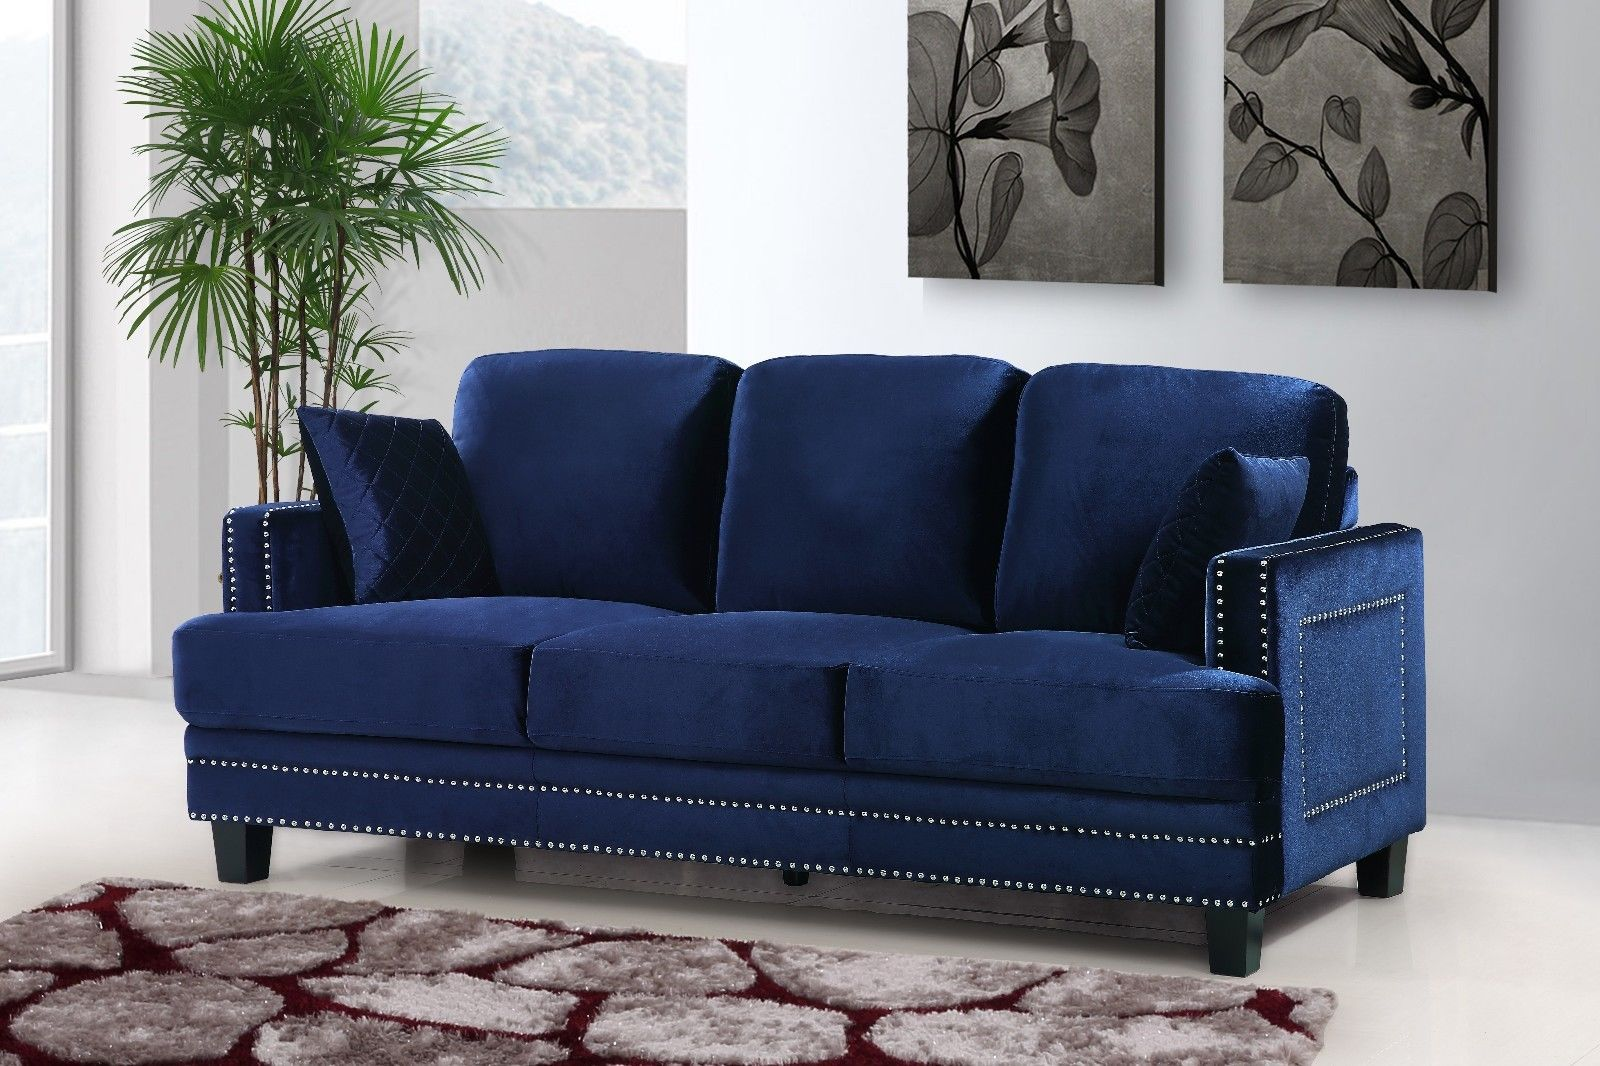 Meridian 655 Navy Velvet Leather Living Room Sofa Chic Contemporary Style